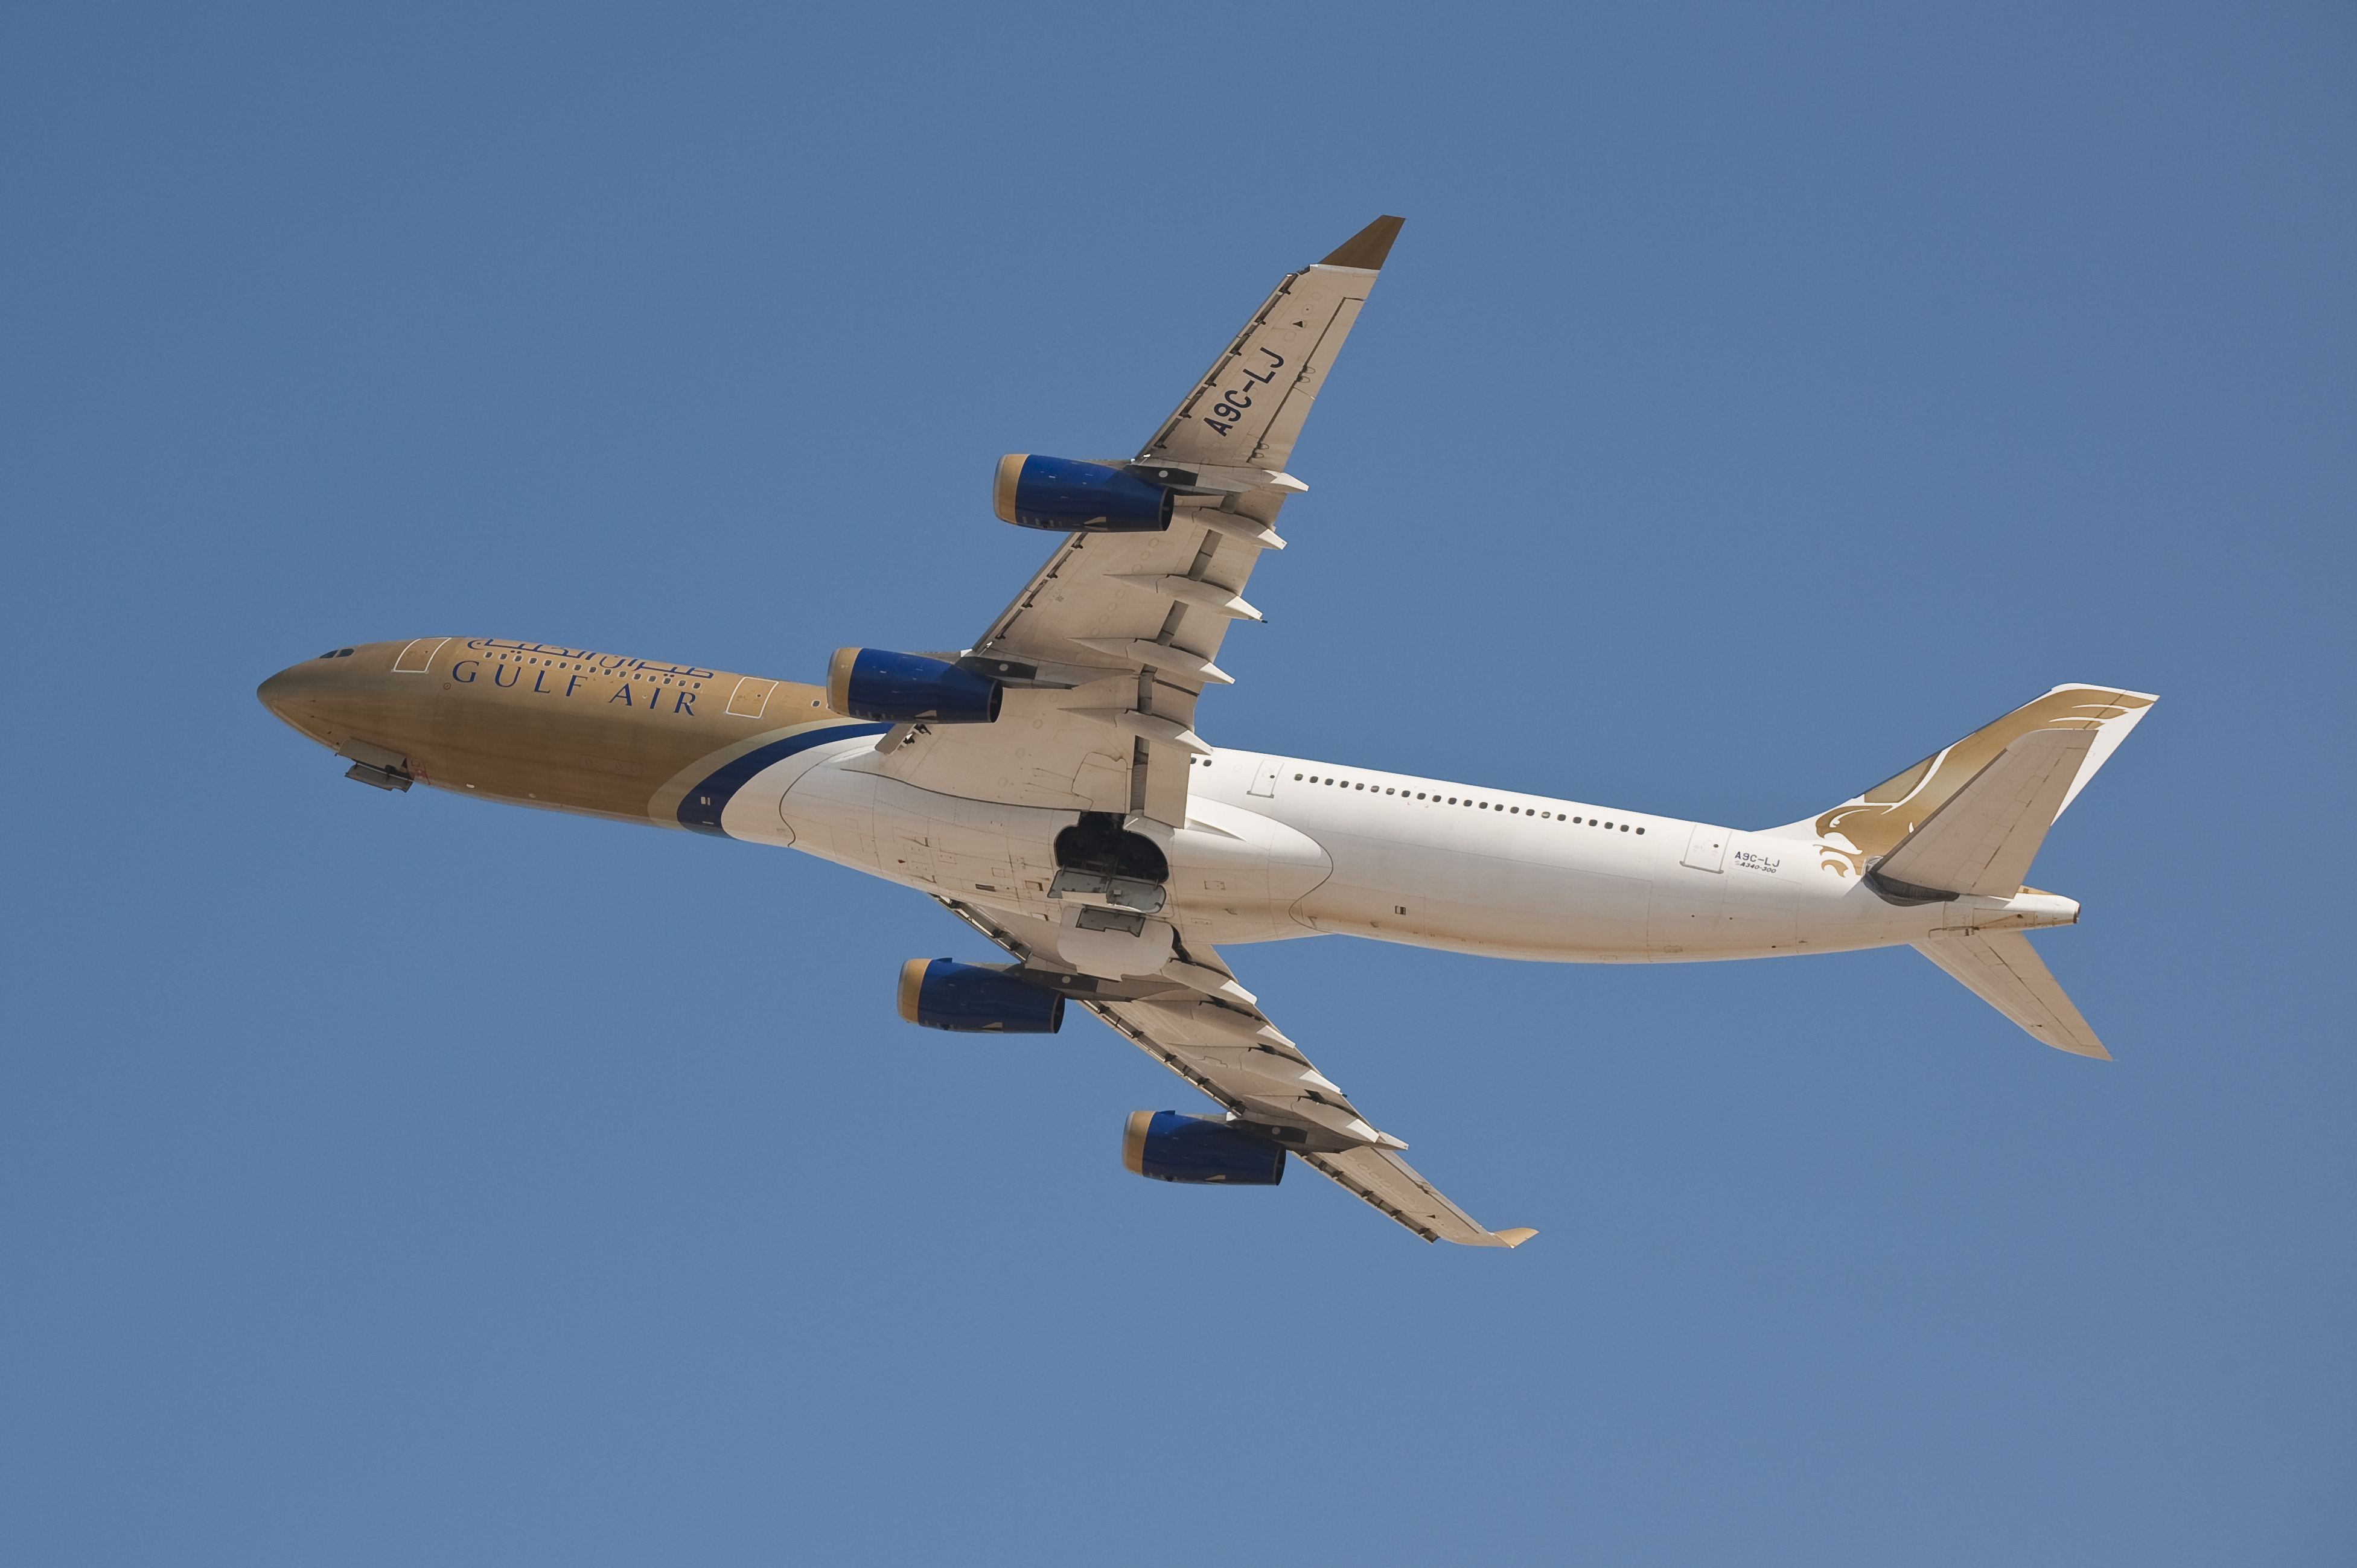 Gulf Air. Airlines operating flights into Doha, Qatar (DOH)